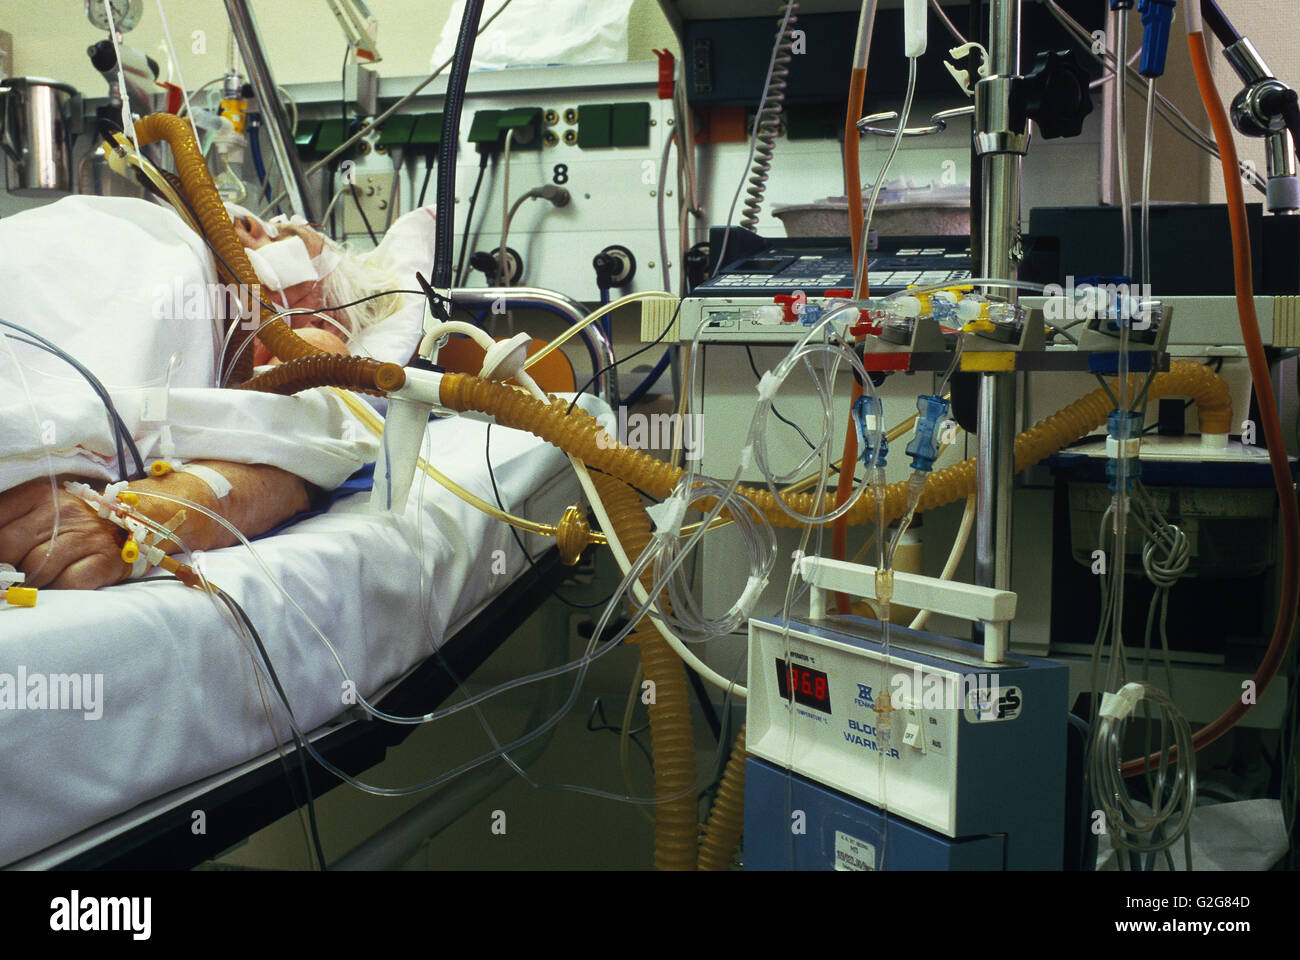 Patient in the intensive care unit (ICU) of St. Georg Hospital in Hamburg, Germany. - Stock Image